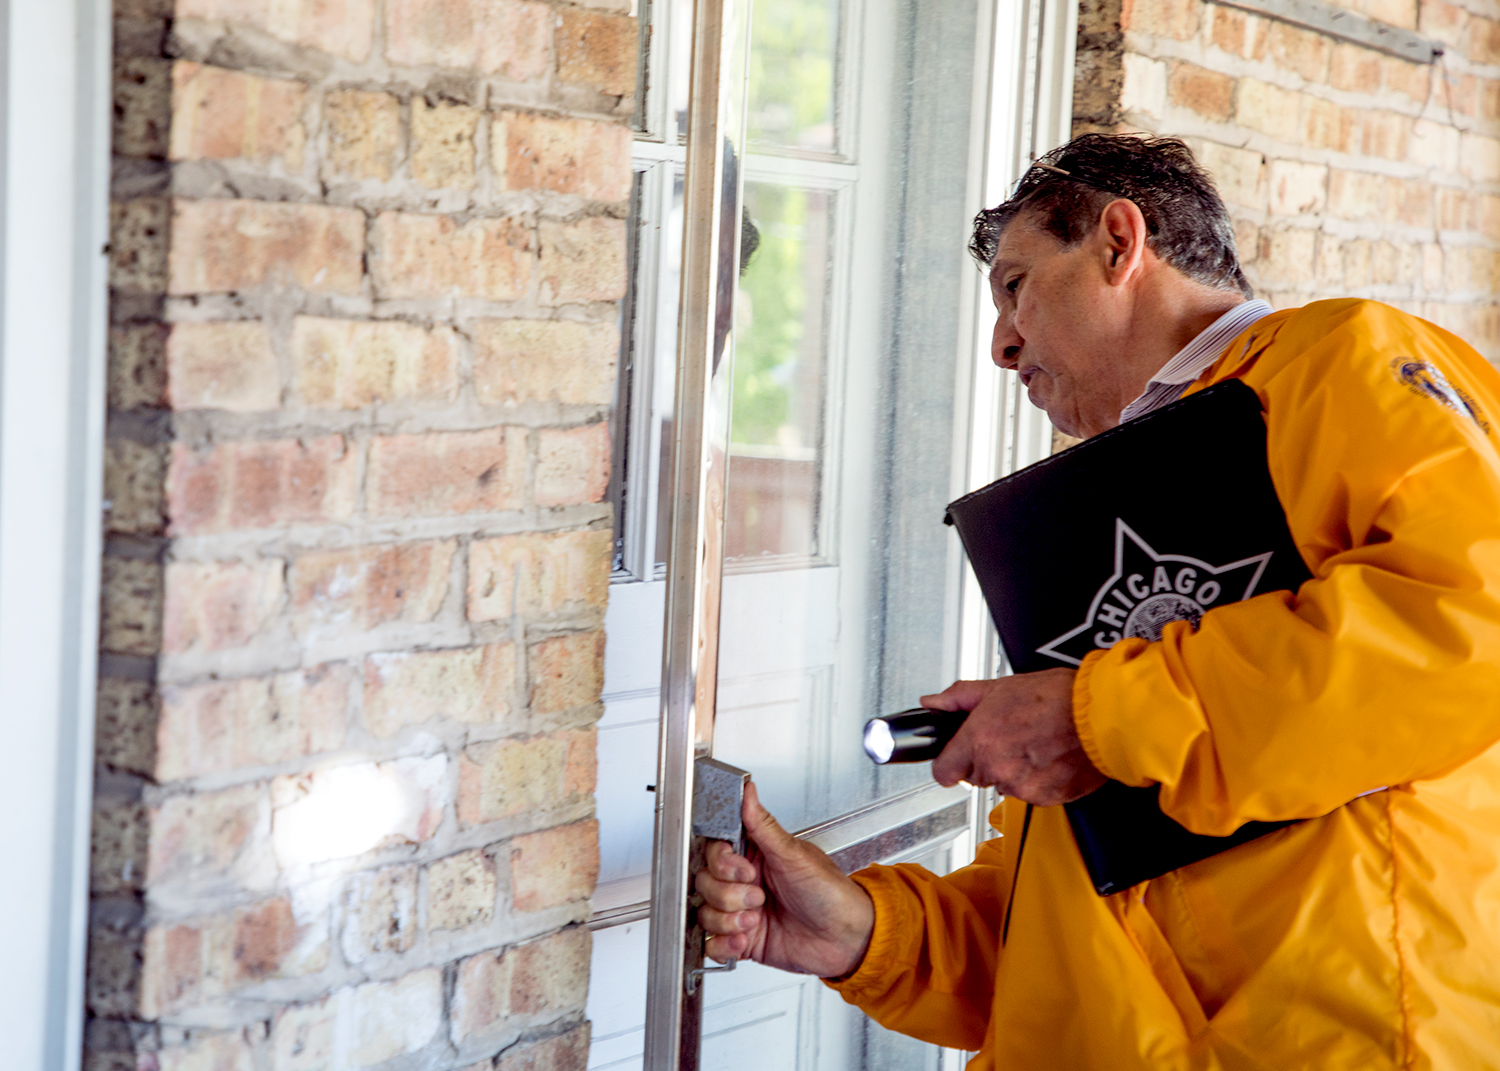 Richard Concaildi checks the back door of a vacant apartment unit in West Rogers Park to make sure it is securely locked. A neighbor had alerted him that it may be occupied by squatters. (Andrew Gill/WBEZ)